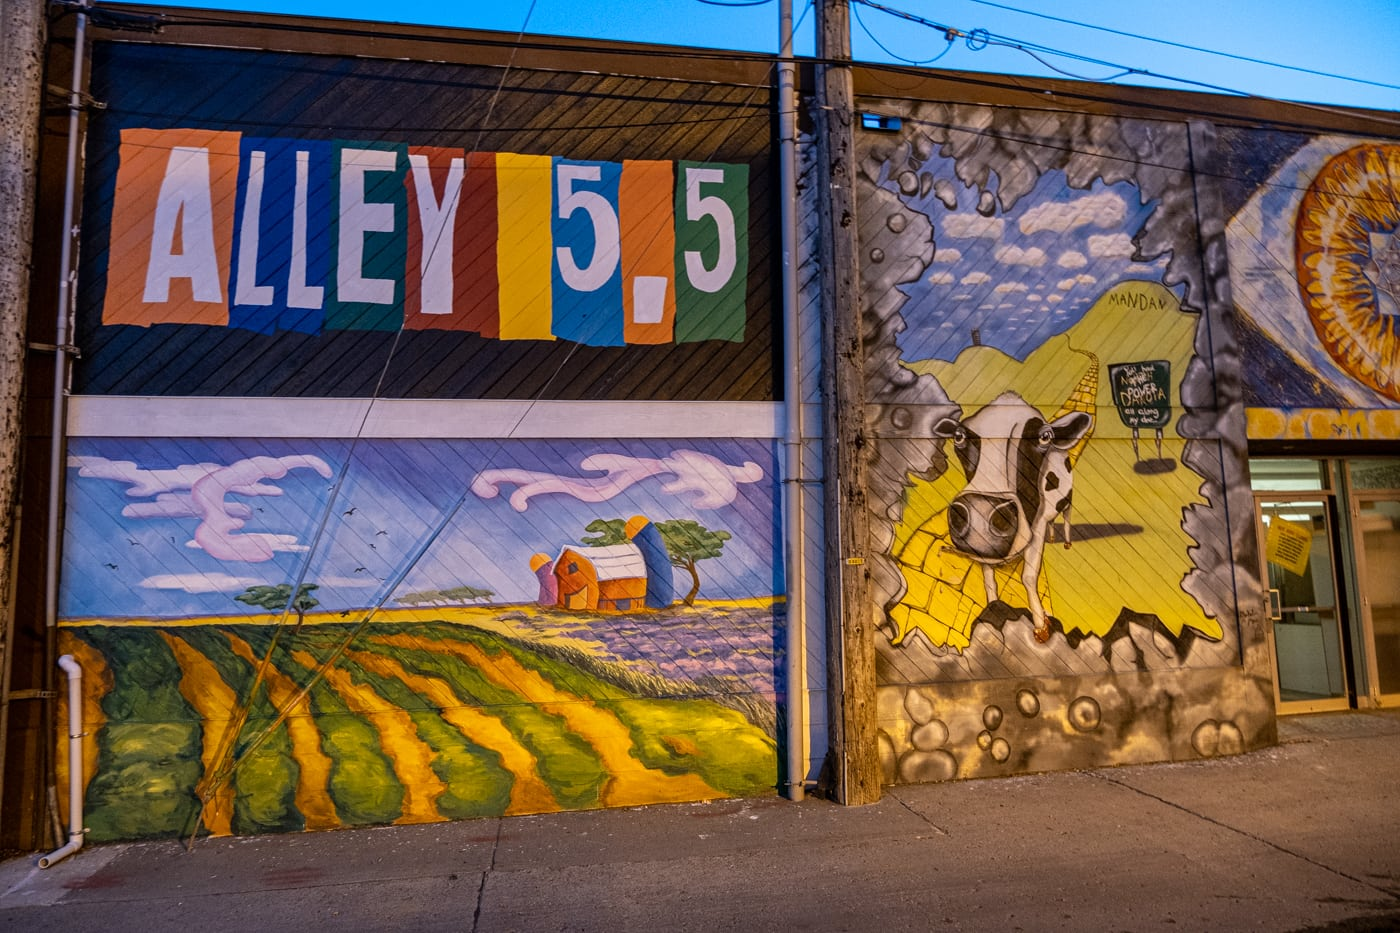 Alley 5.5: Bismarck Art Alley in North Dakota - Street art and Murals in Bismarck, North Dakota